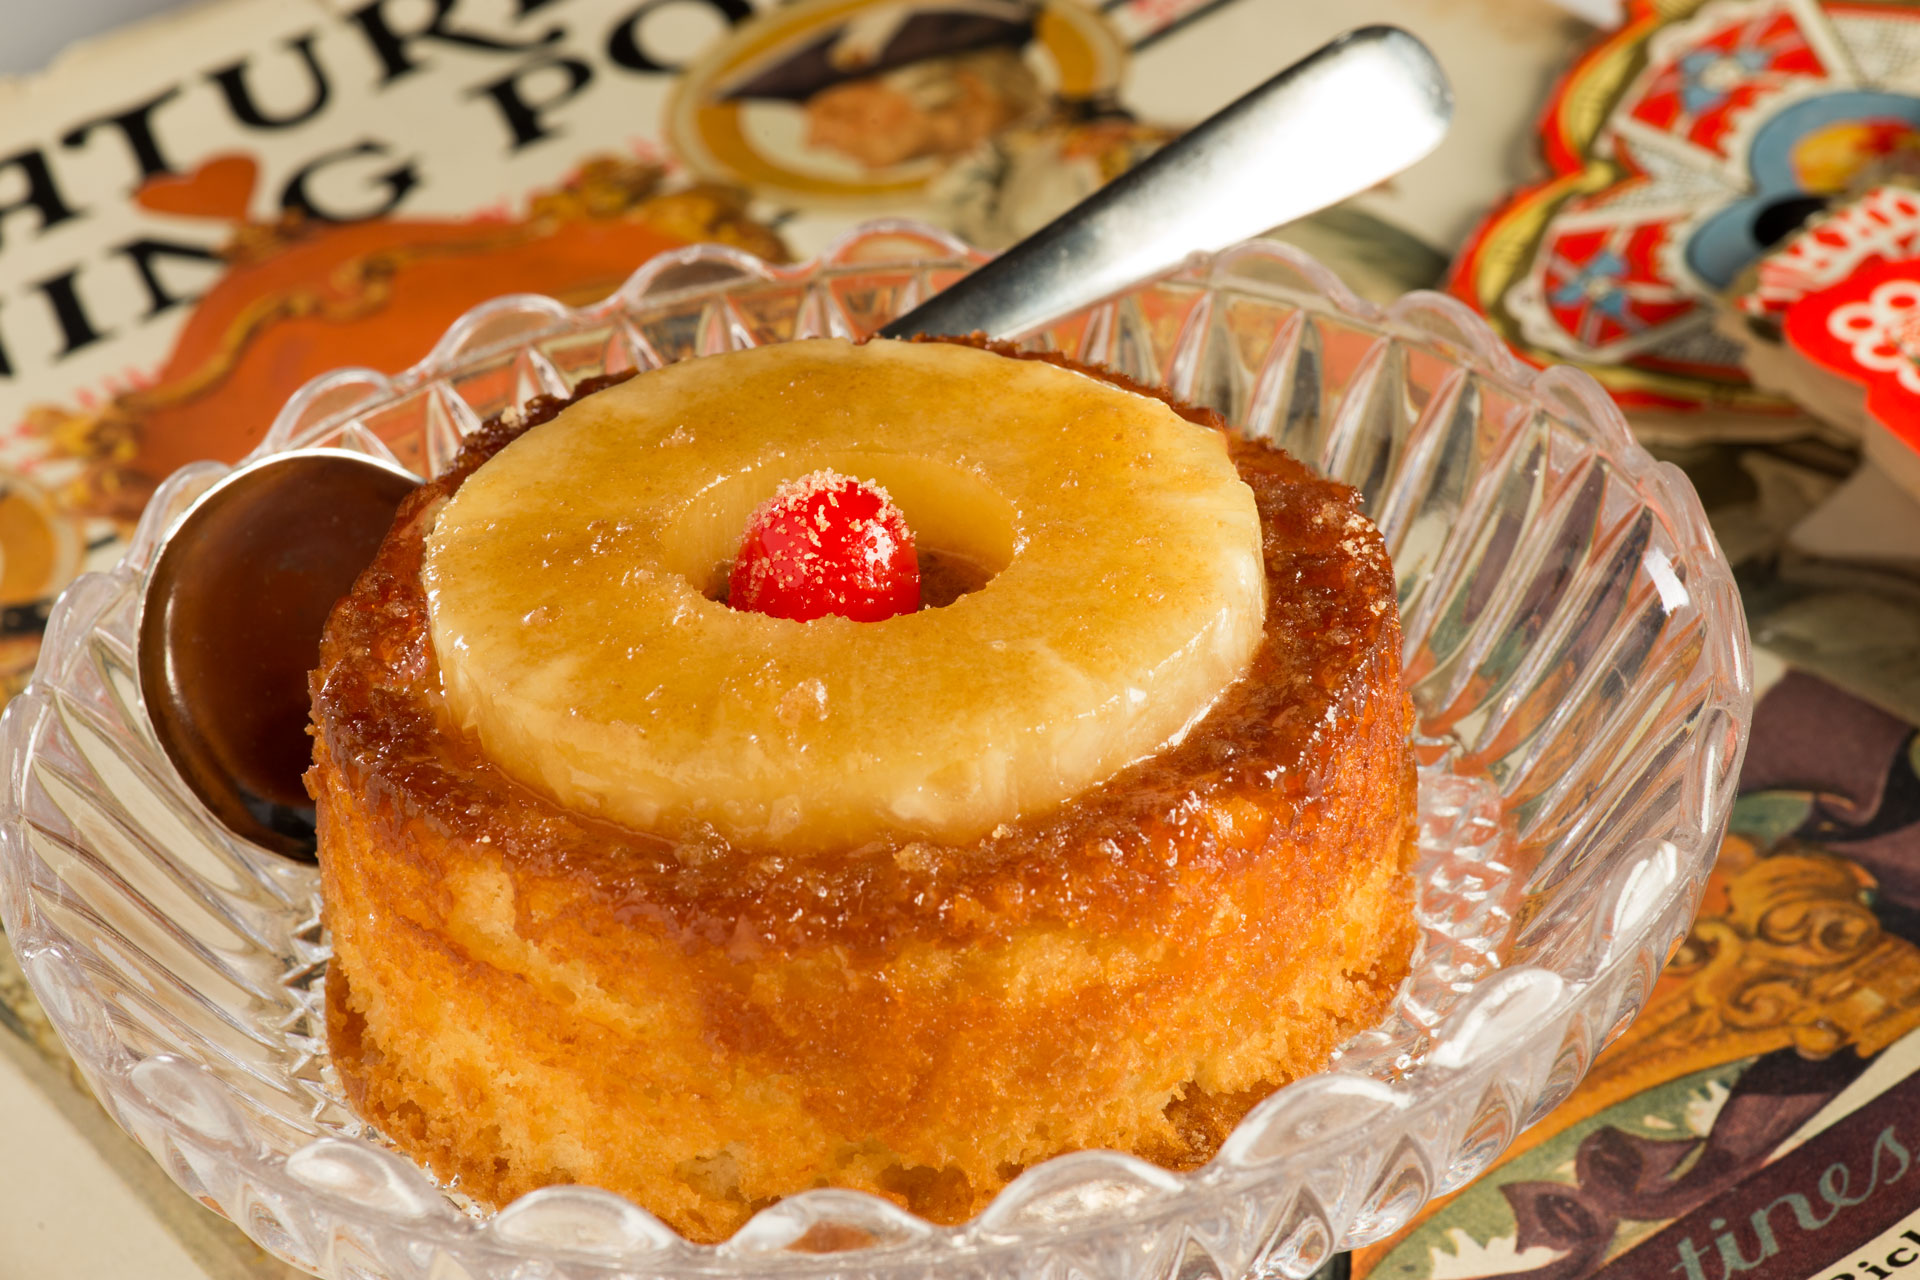 This Personal Pineapple Upside Down Cake is an updated look at a favorite dessert from the 1920s and is part of our Valentine's series of original recipes from the Food Channel.